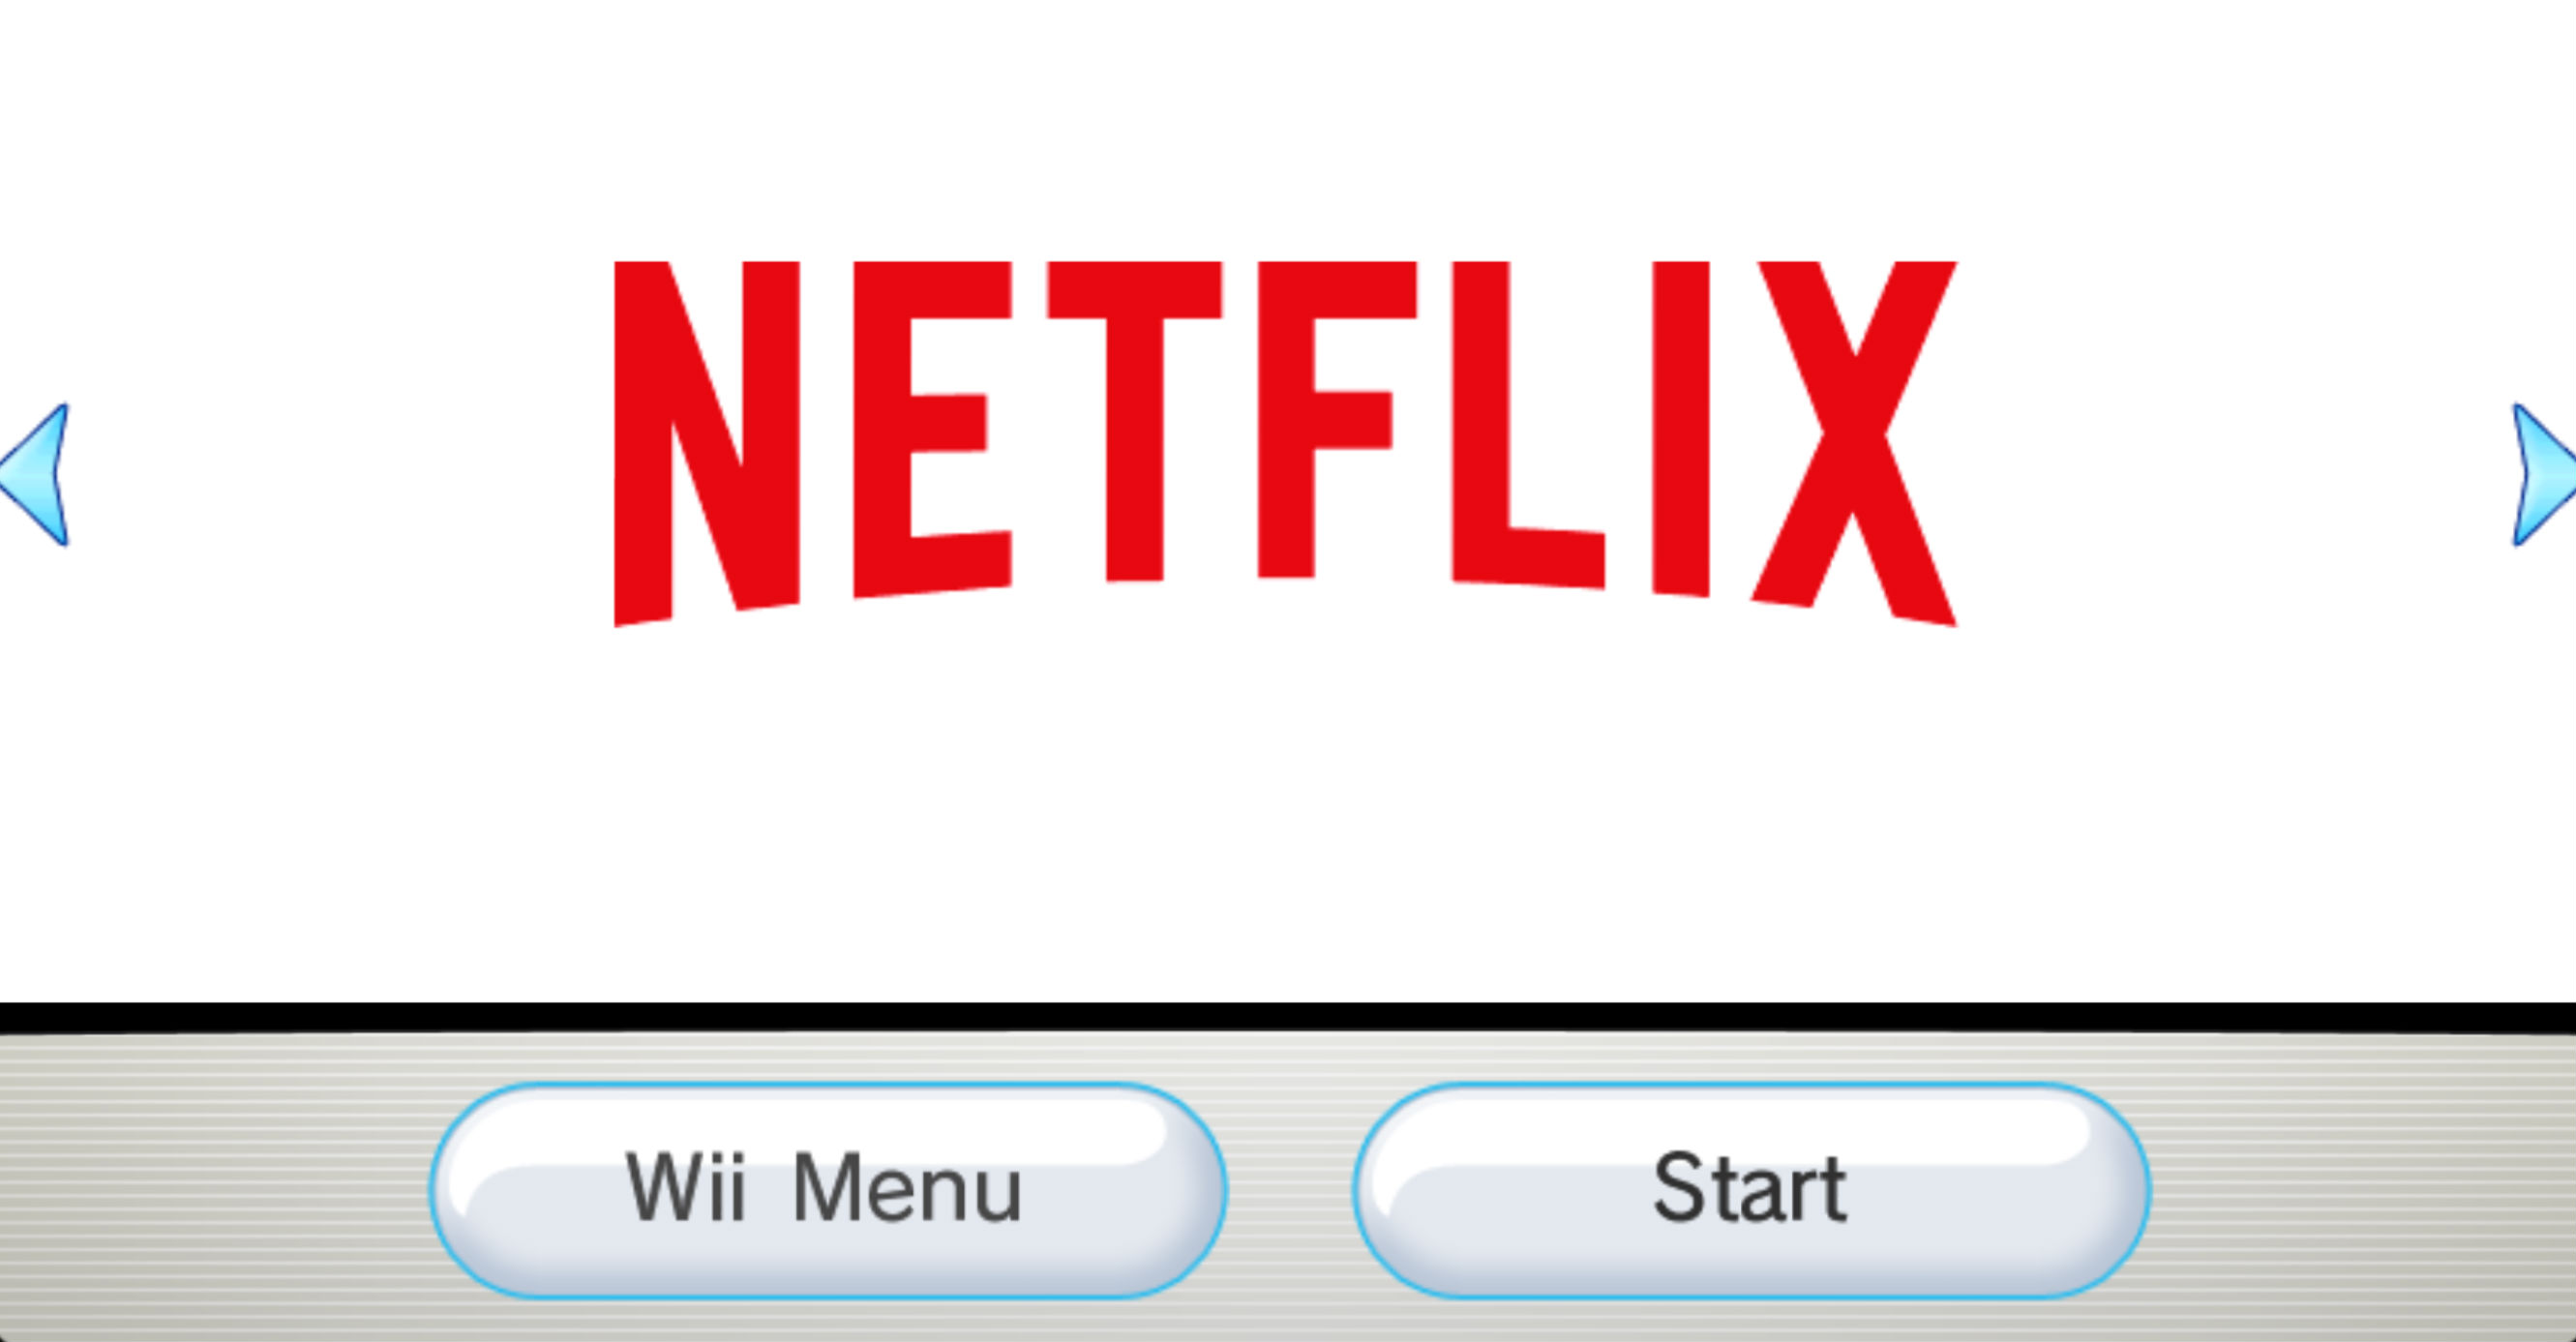 Nintendo might be suspending all Wii video services, Netflix included, early next year screenshot